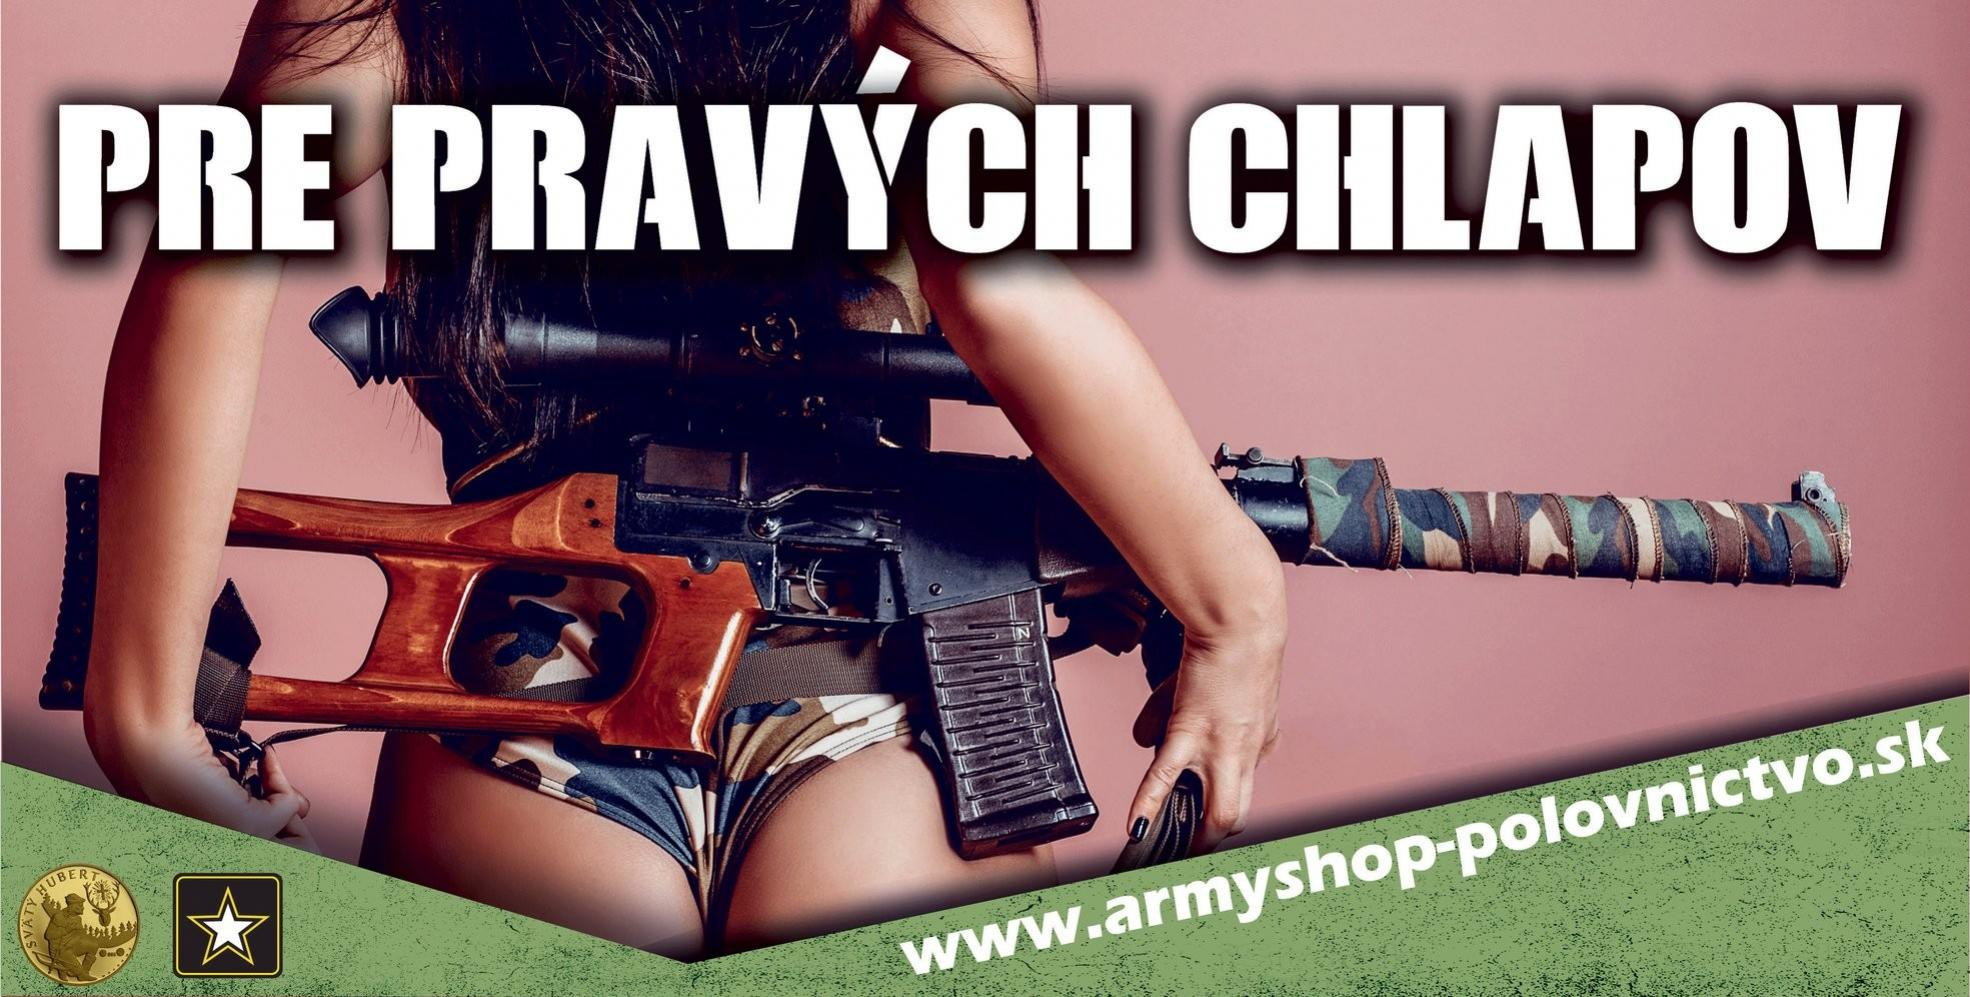 army shop, po�ovn�ctvo topo��any